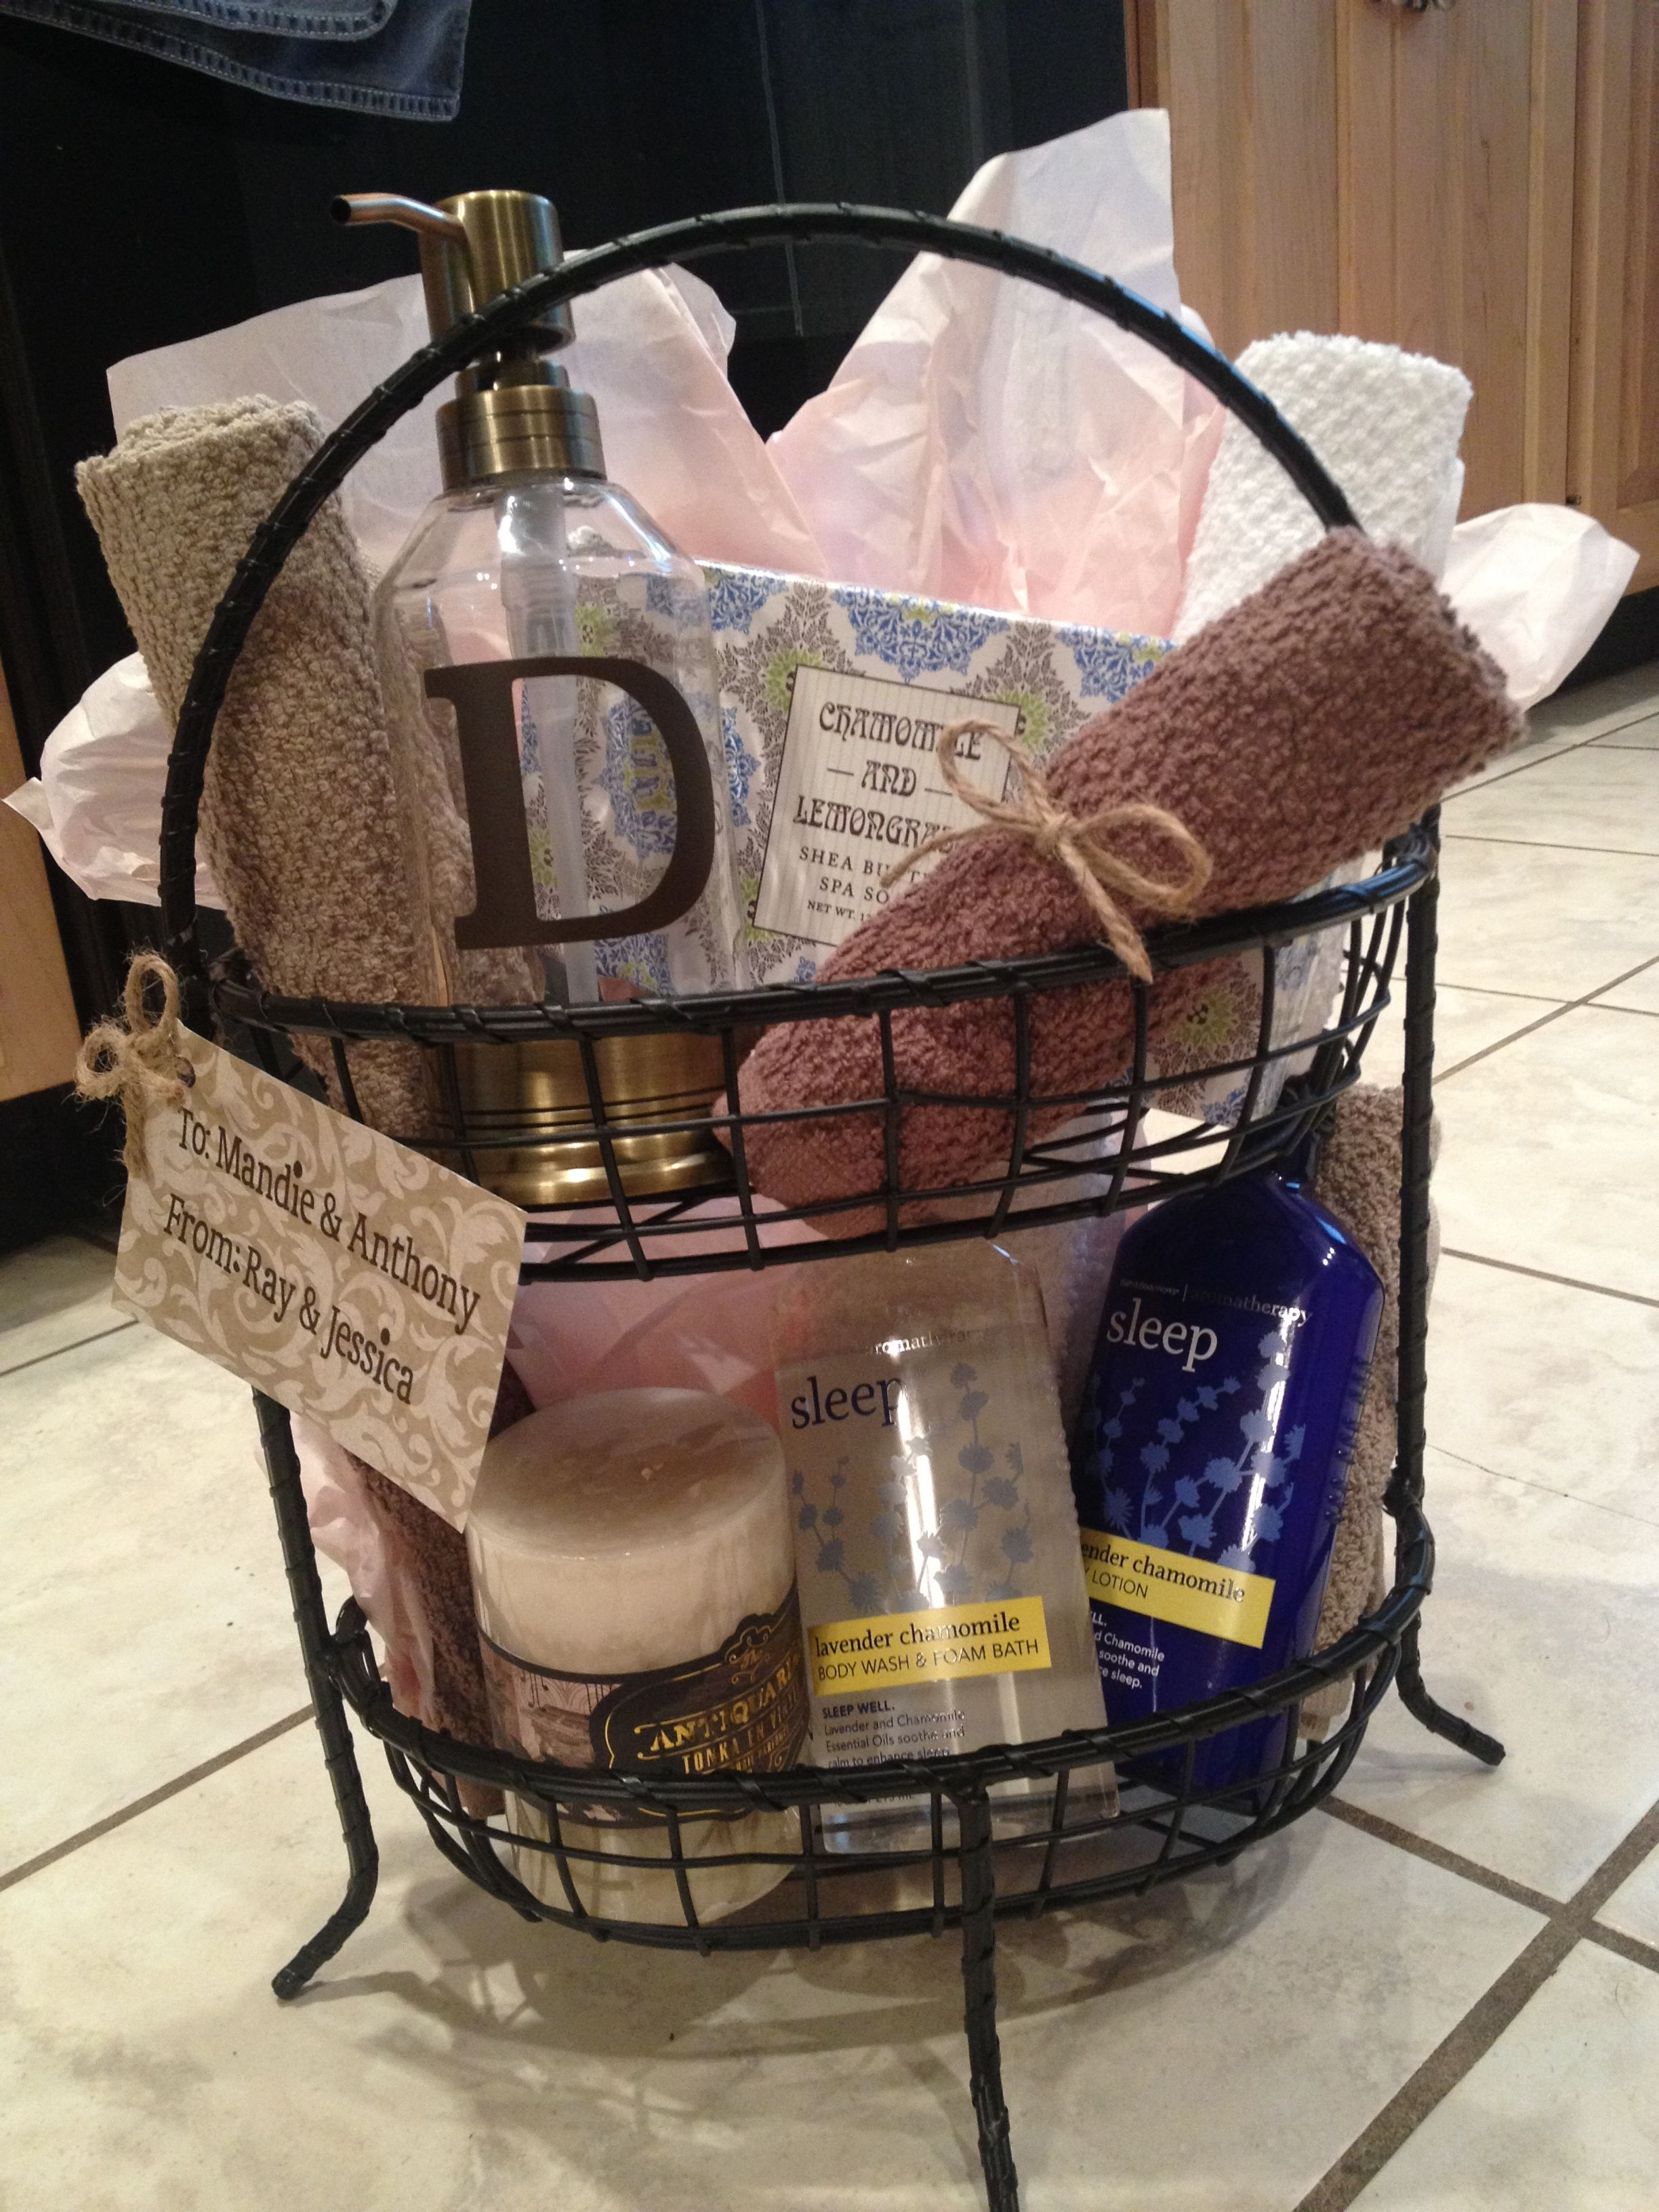 Diy Gift Basket I Made This For A Wedding Shower Gift Super Cute Idea Diy Gift Baskets Wedding Shower Gifts Wedding Shower Gift